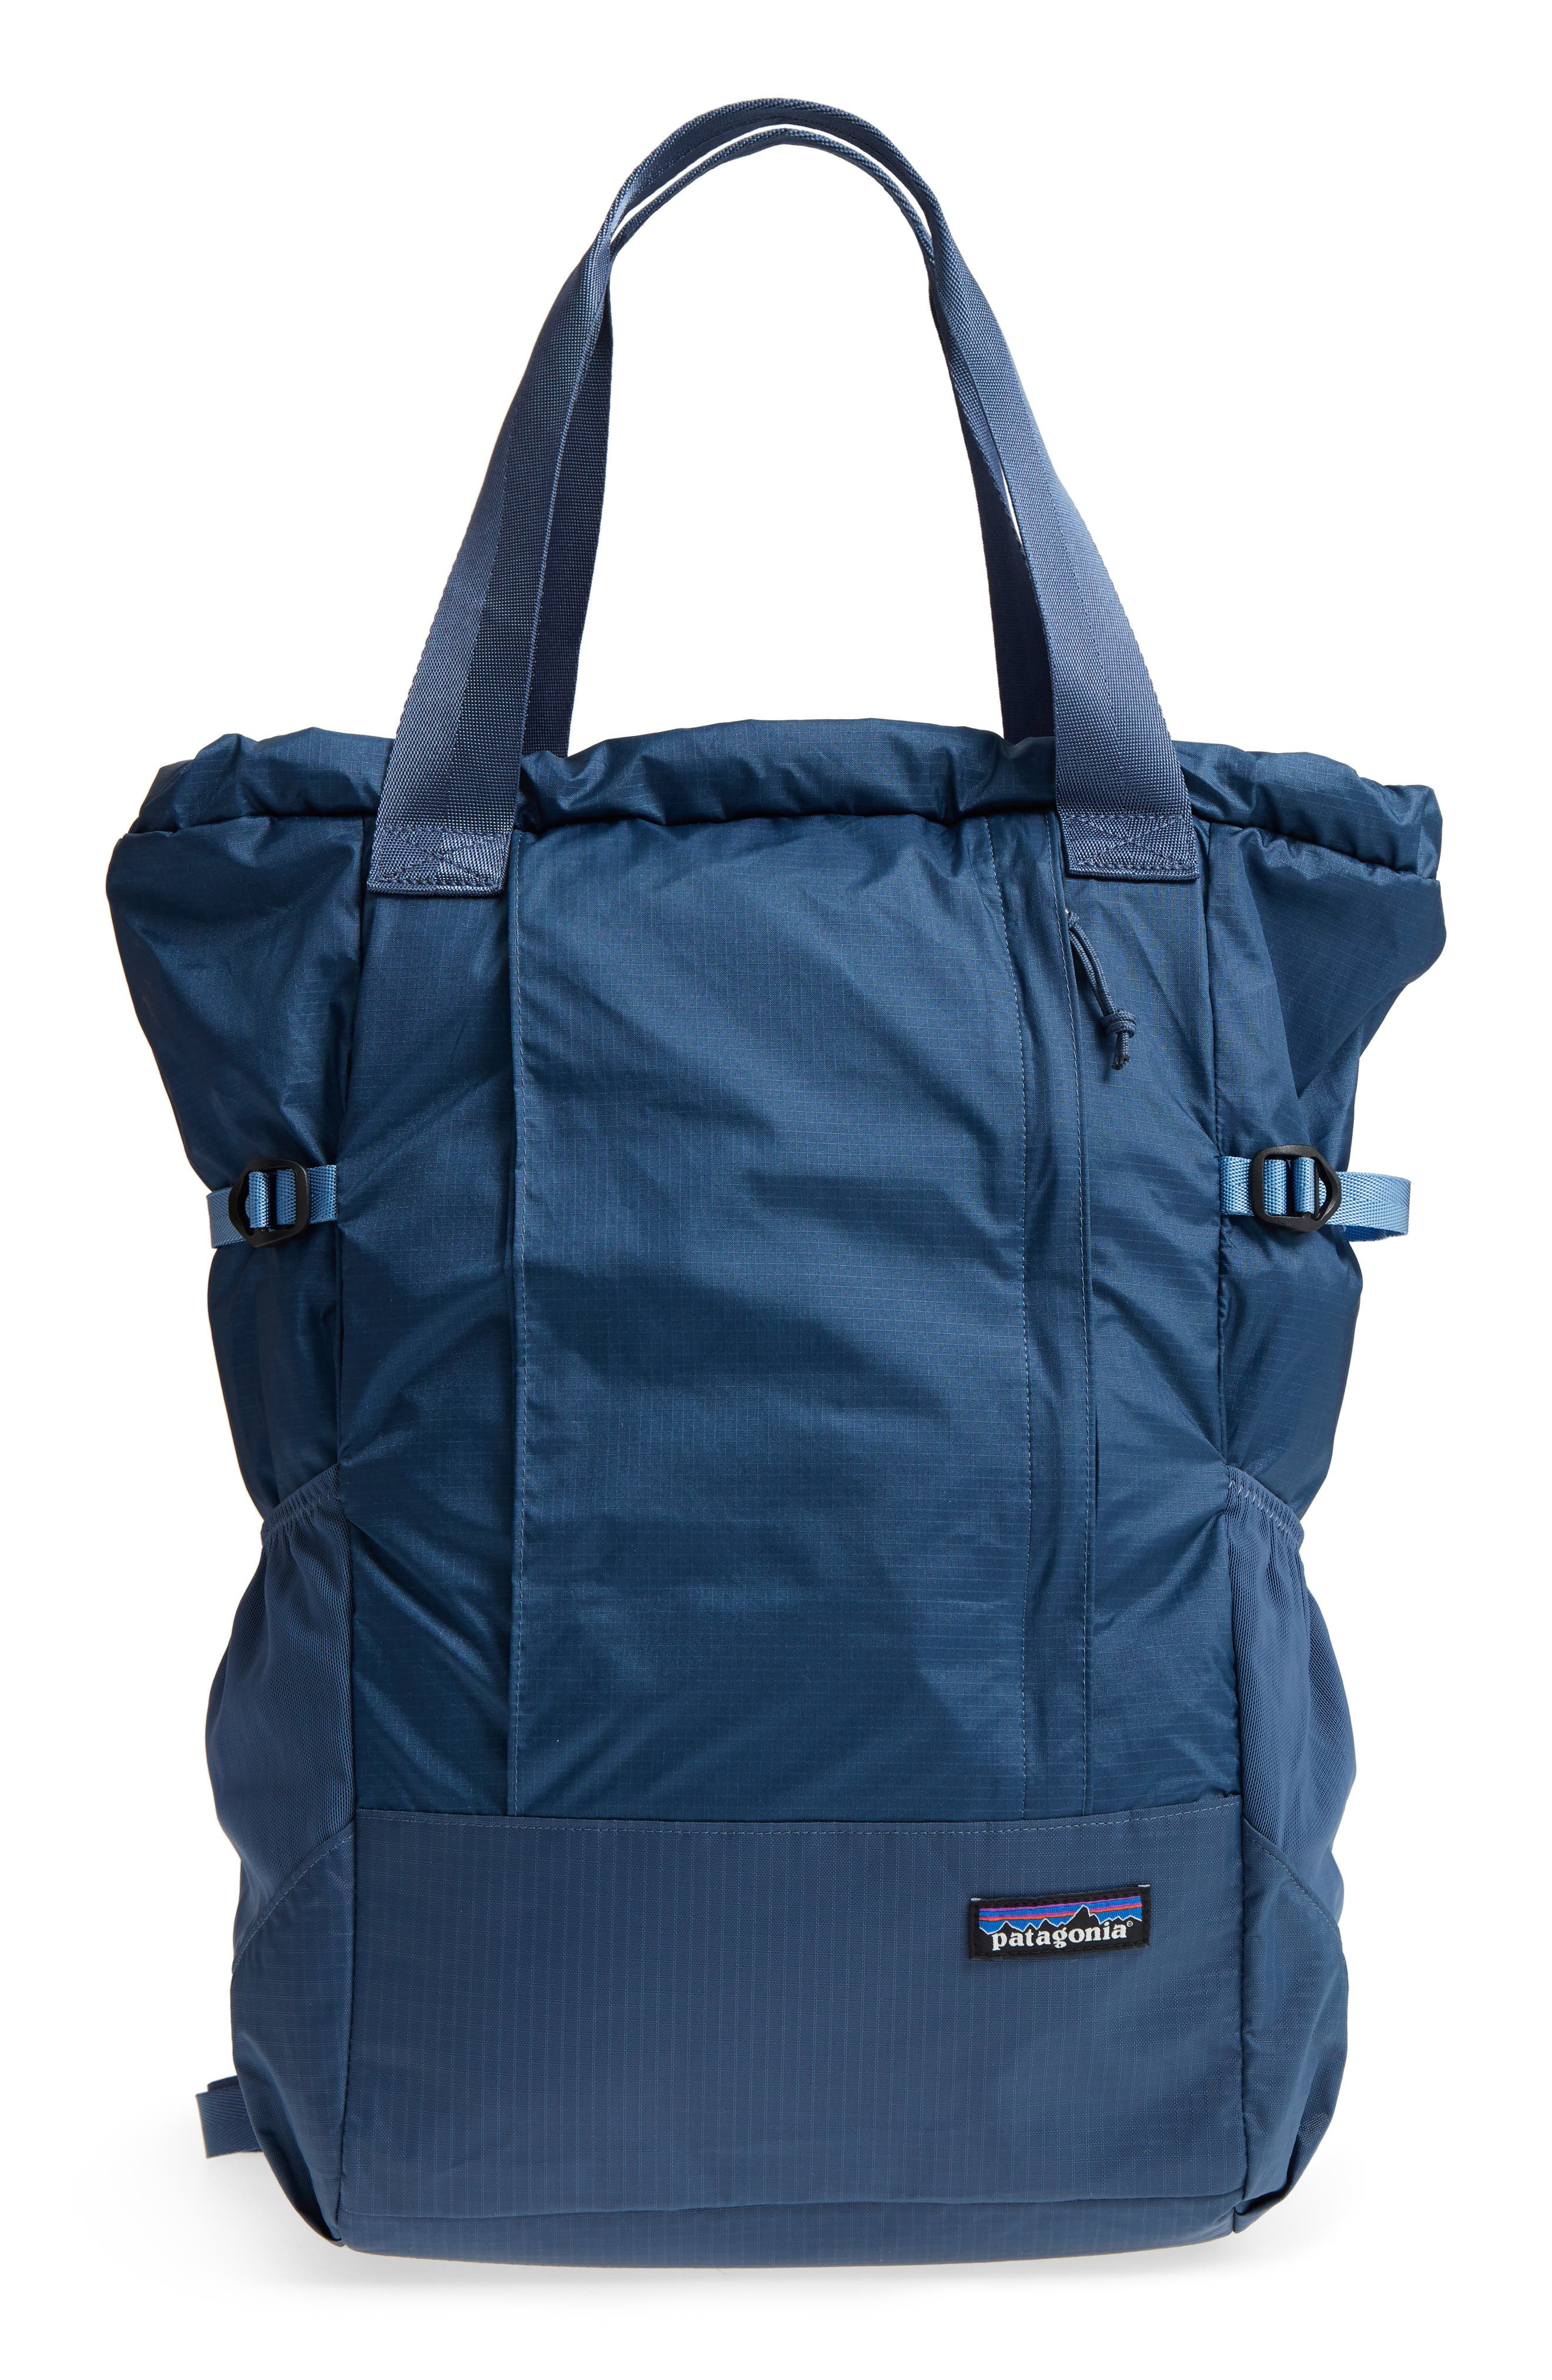 Lightweight Travel Tote Pack,                         Main,                         color, Dolomite Blue